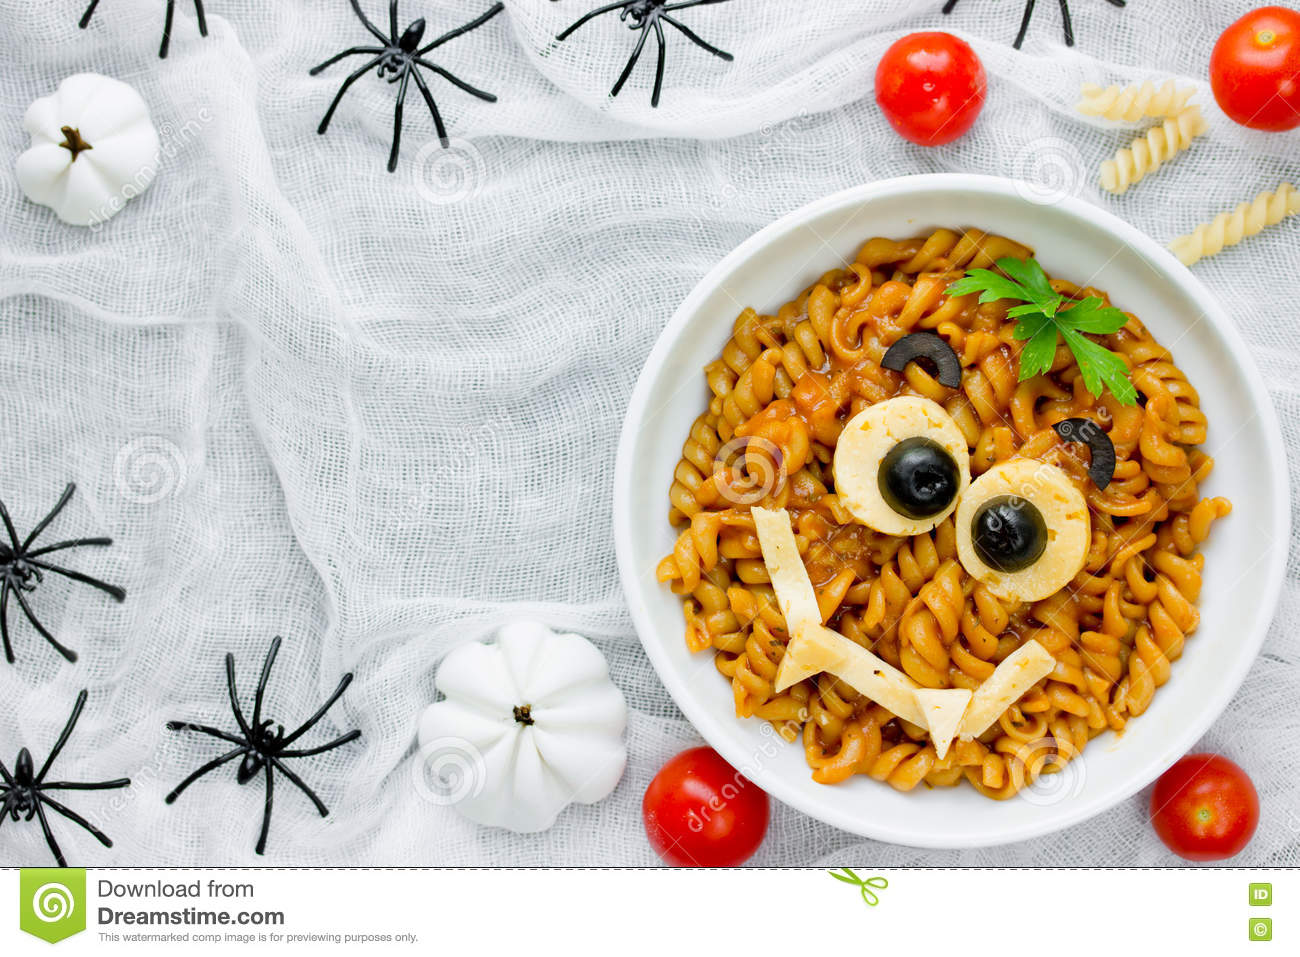 Pasta Bolognese On Halloween Party Fun Recipe For Kids To Dinner Or